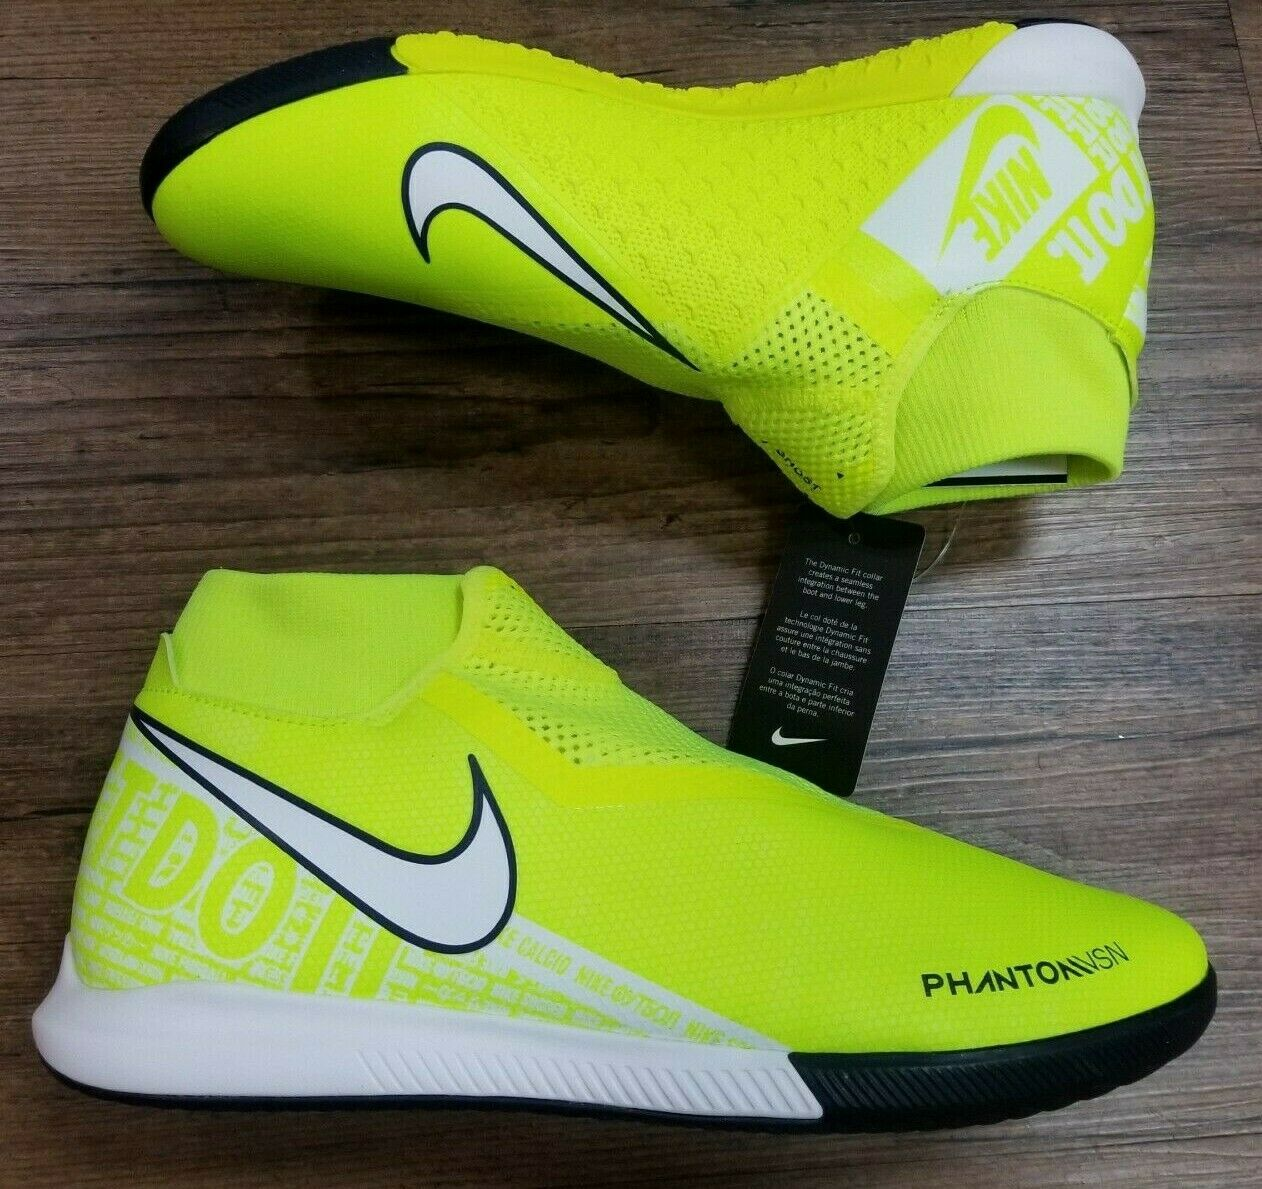 Nike Phantom VSN Academy DF IC Men's Indoor Soccer Shoes AO3